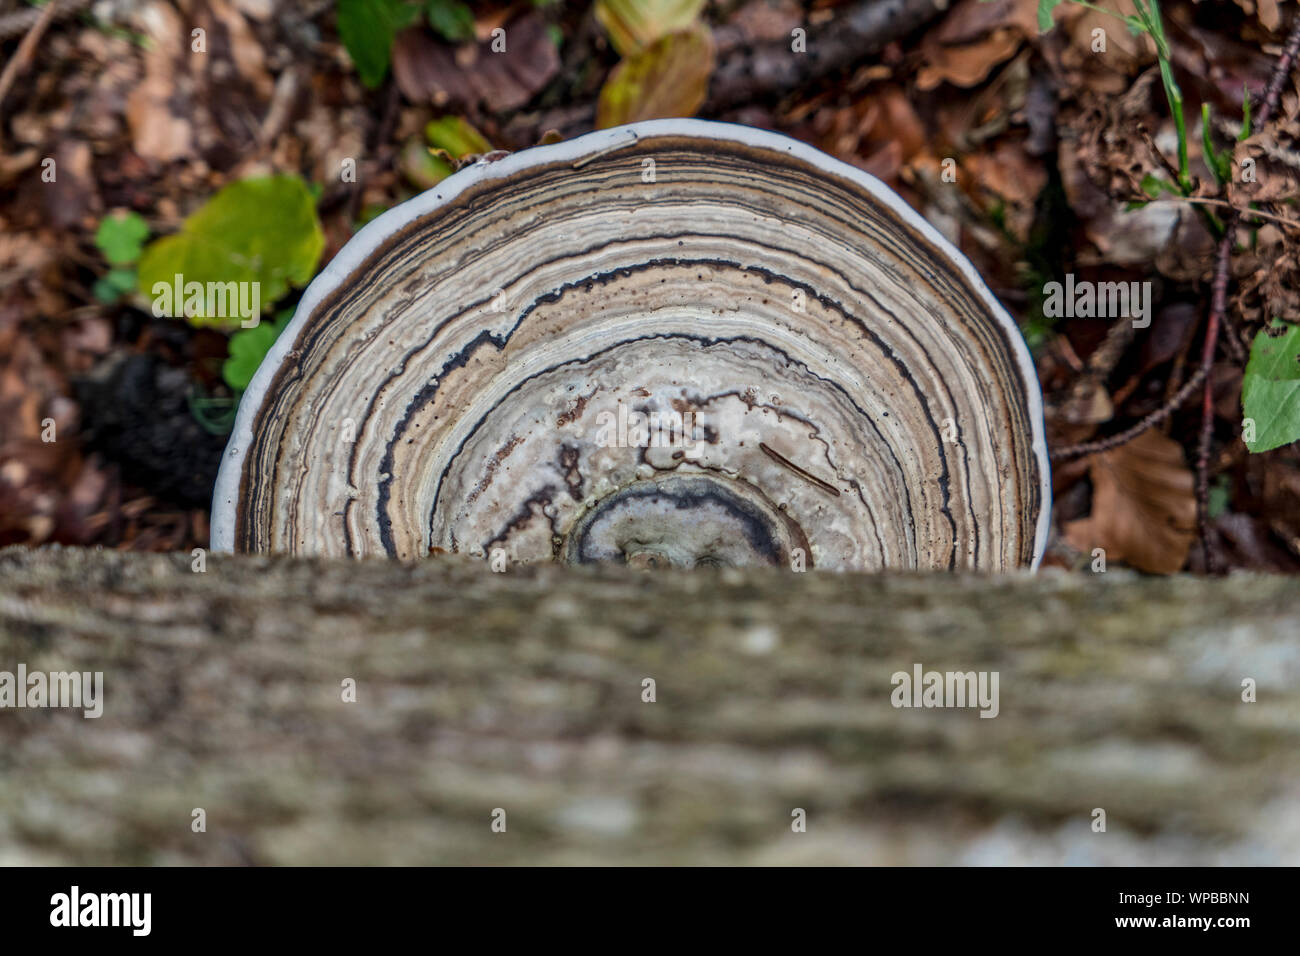 Tree mushroom with nice round drawing above the forest floor Stock Photo